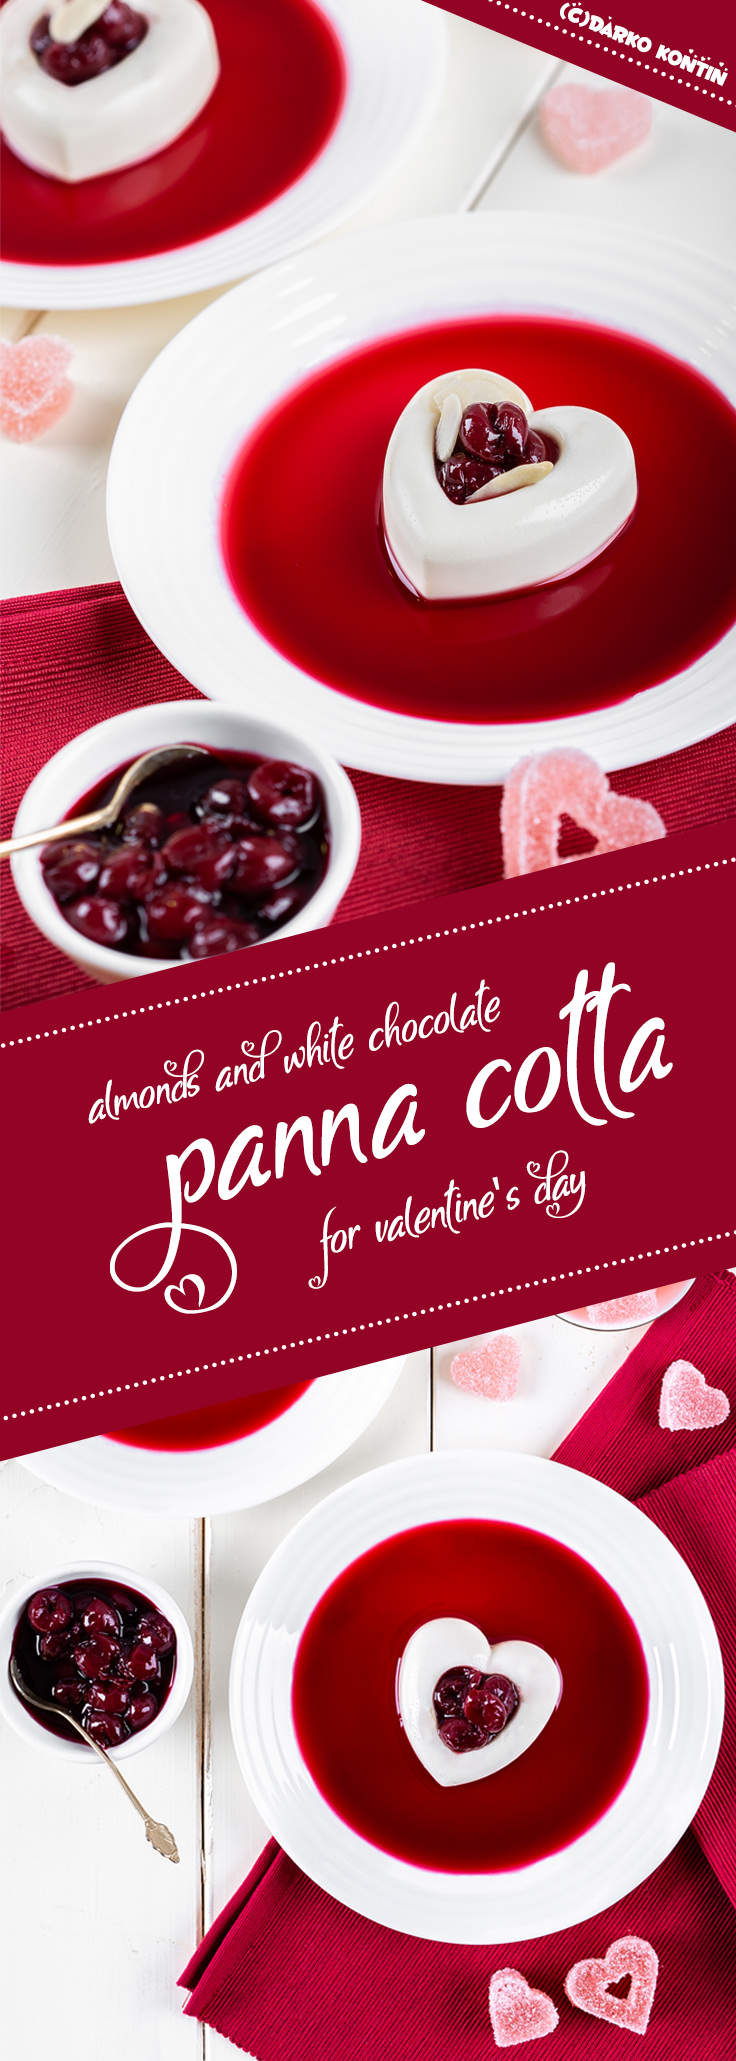 Valentines day almond white chocolate Panna cotta Pinterest